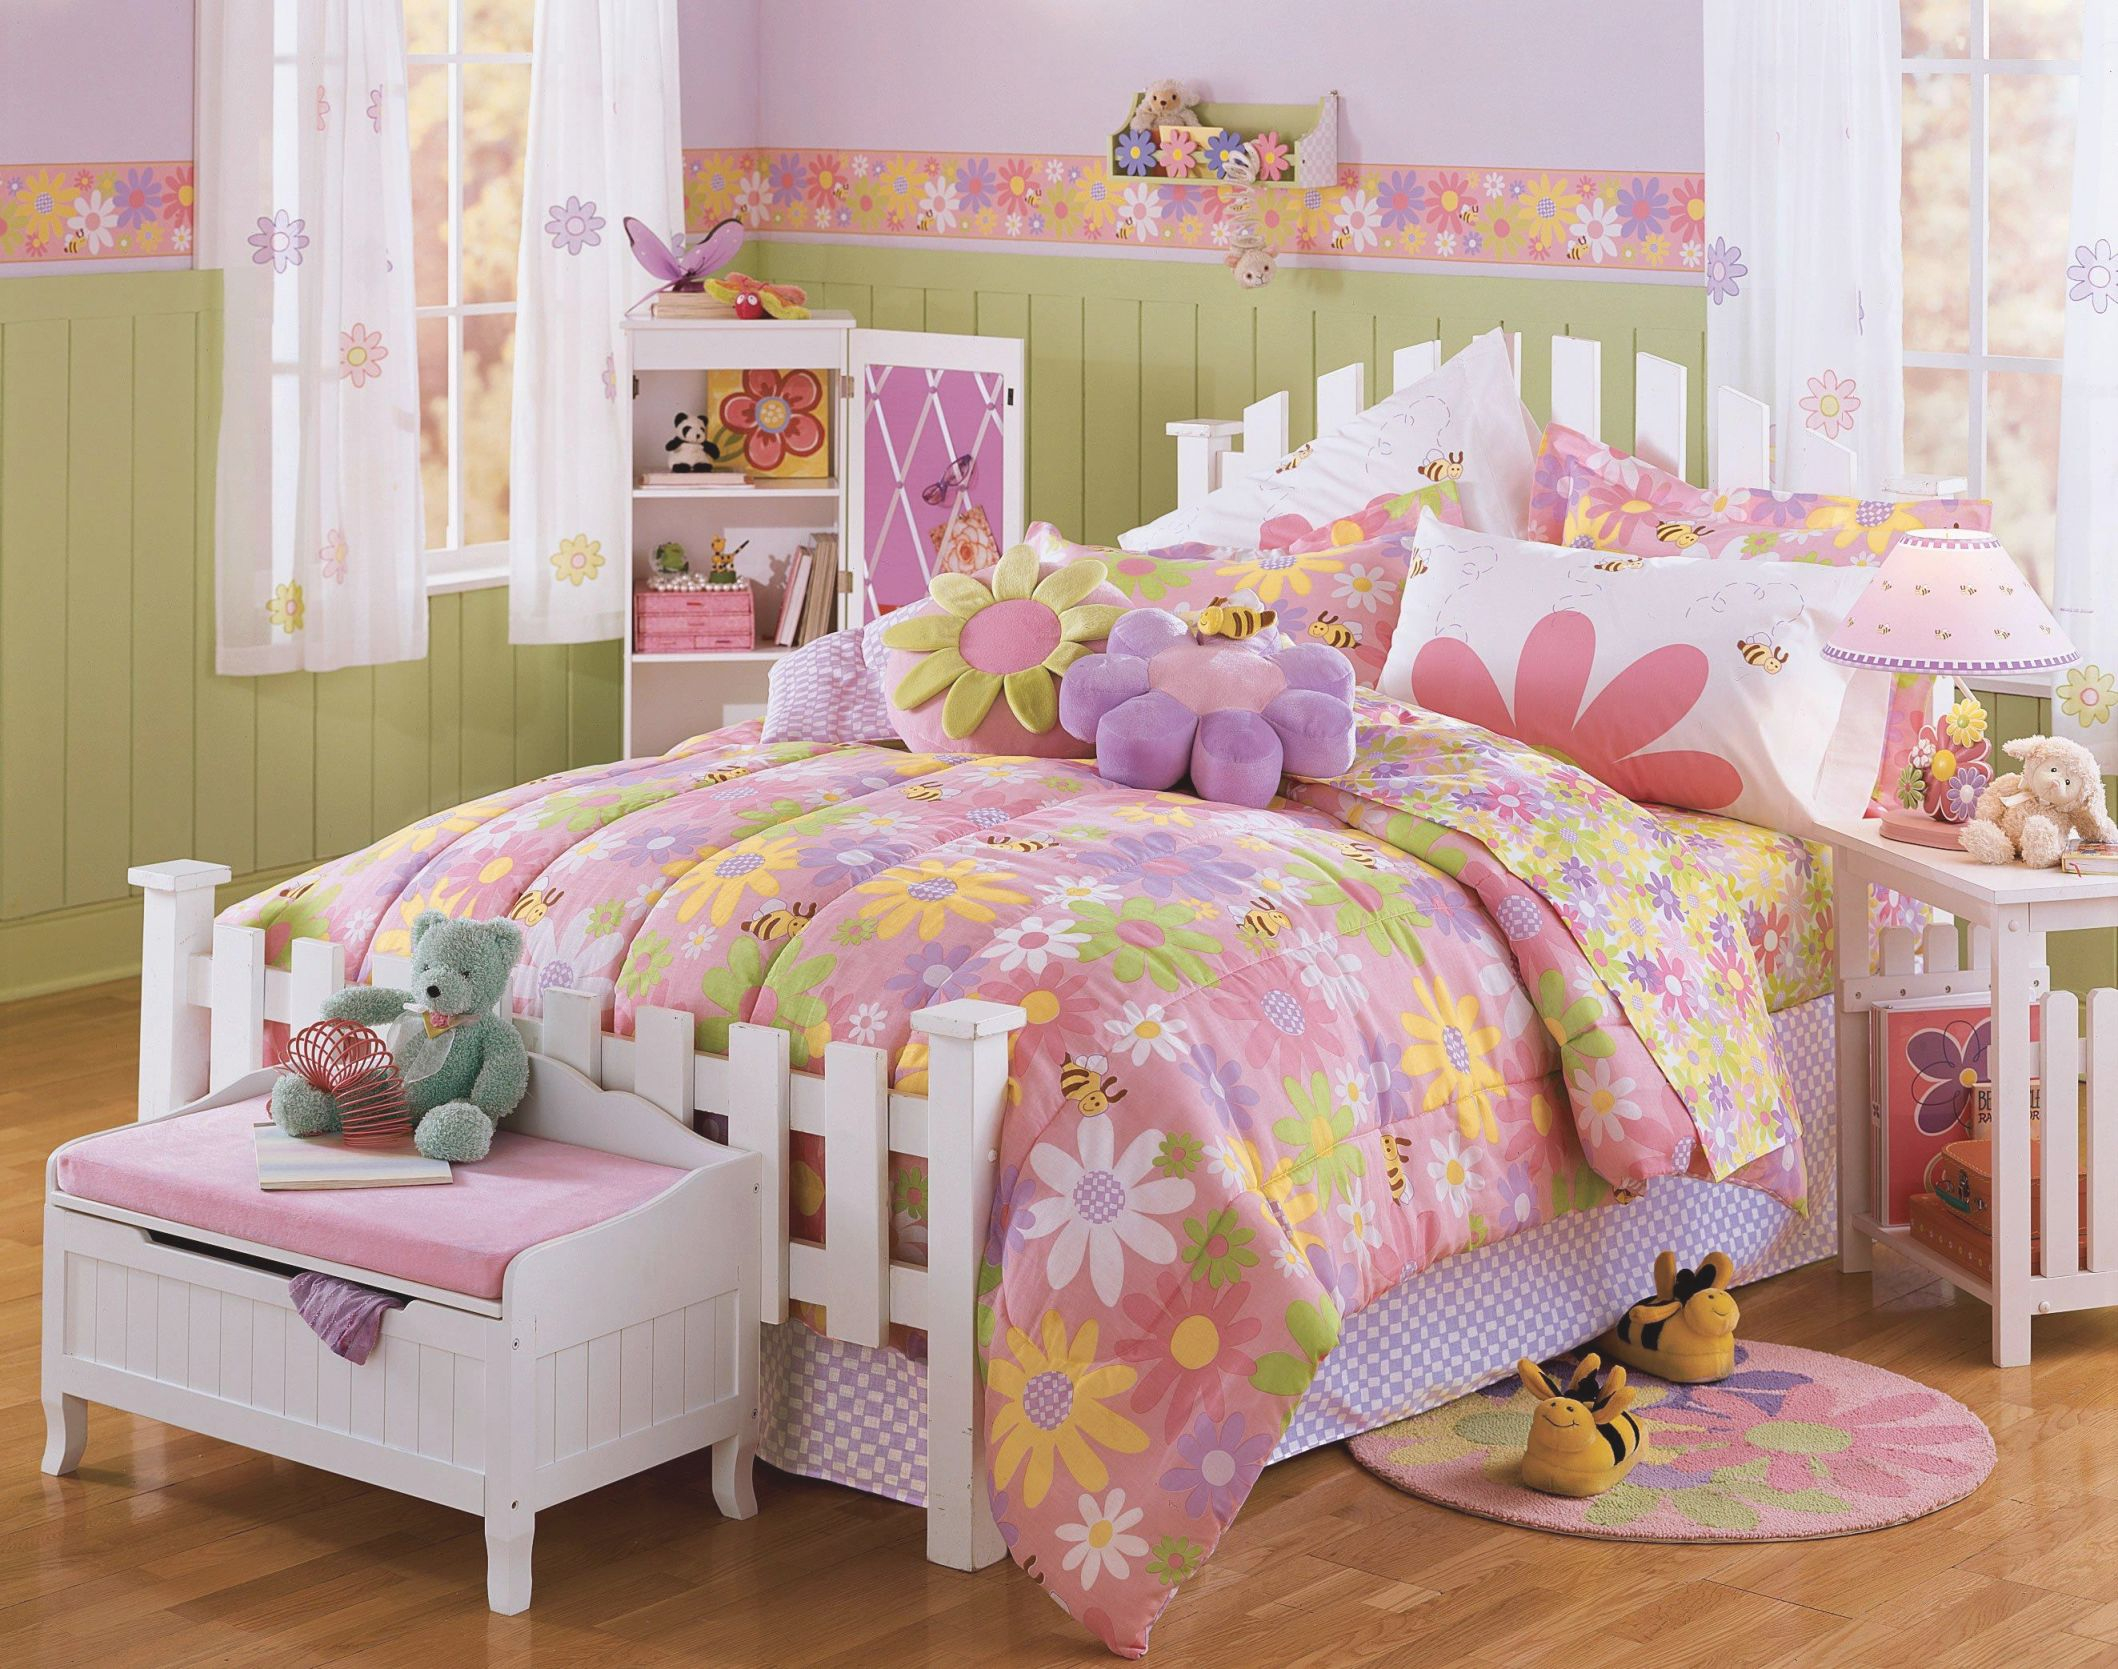 Bedroom : Girls Bedroom Theme With Pastel Green And Pink intended for Decoration Ideas For Little Girl Bedrooms